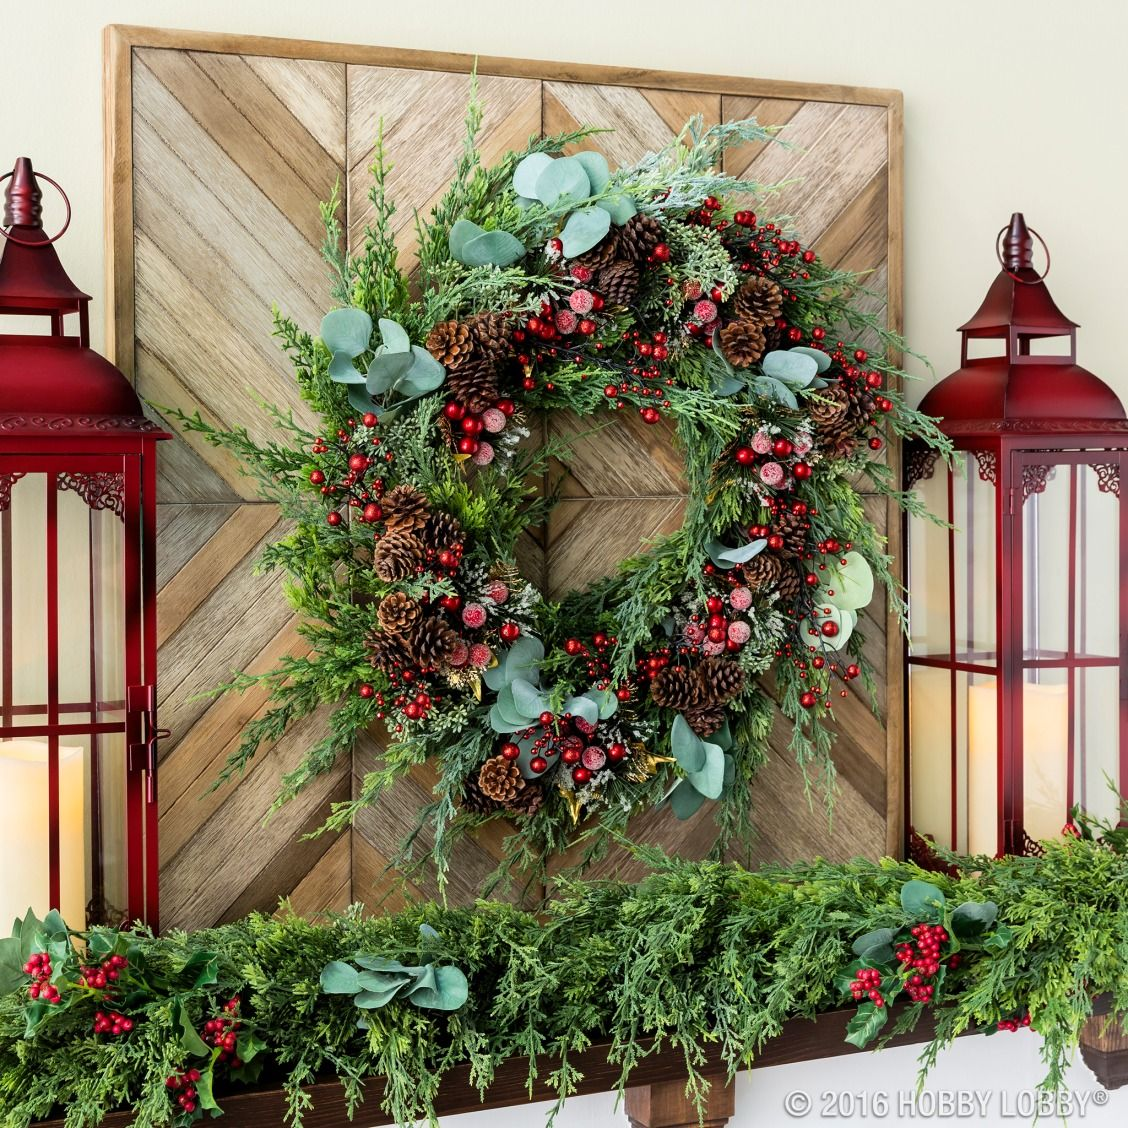 Deck the halls with faux greenery and berry picks this season to add ...